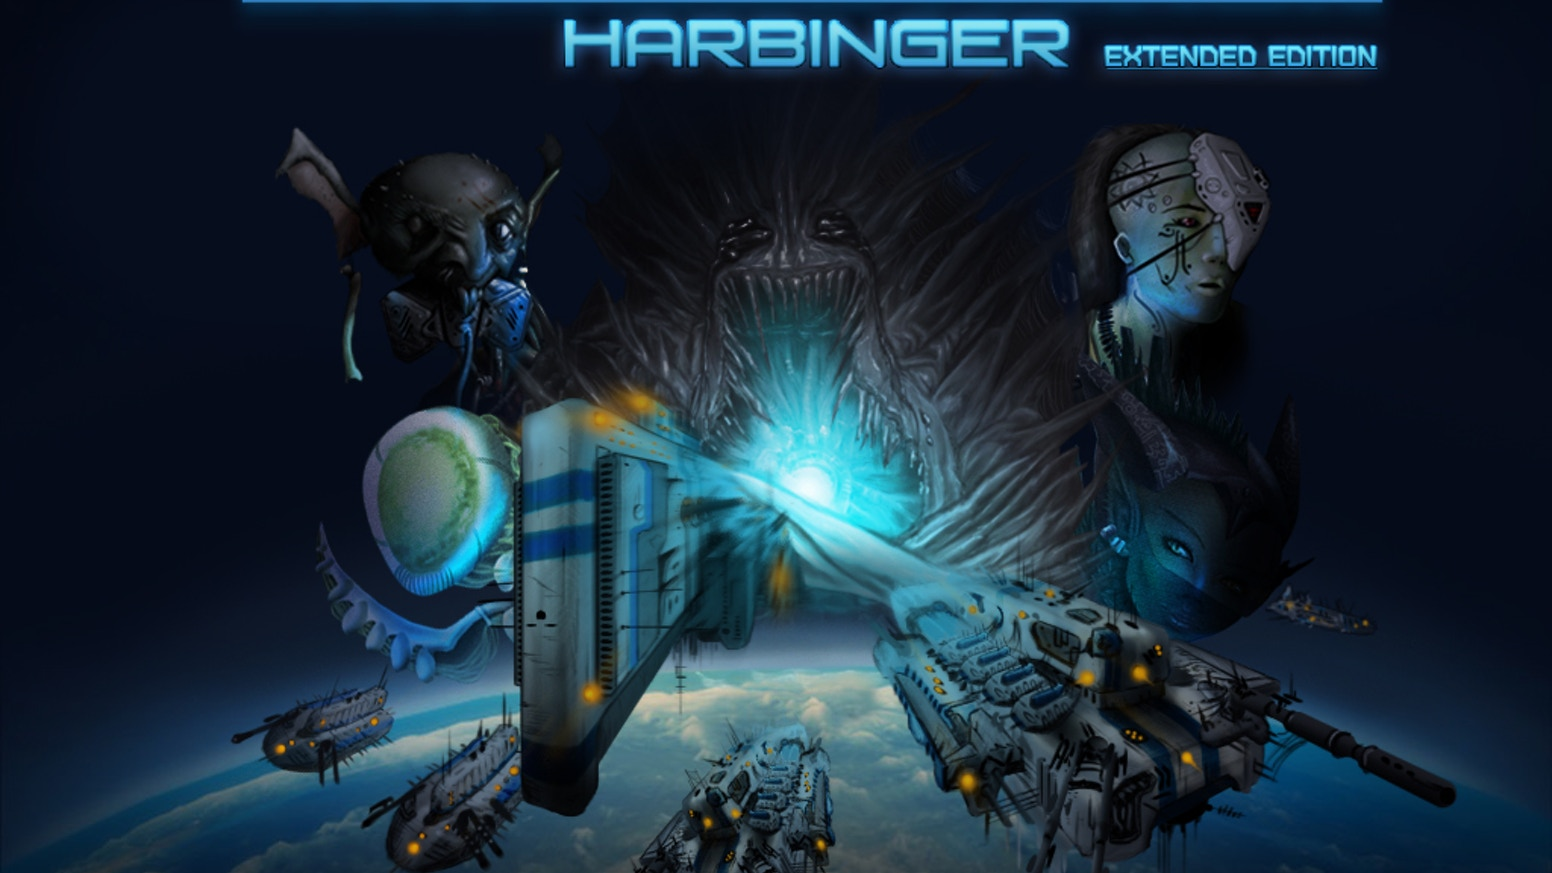 Battlestation: Harbinger Extended Edition by Bugbyte